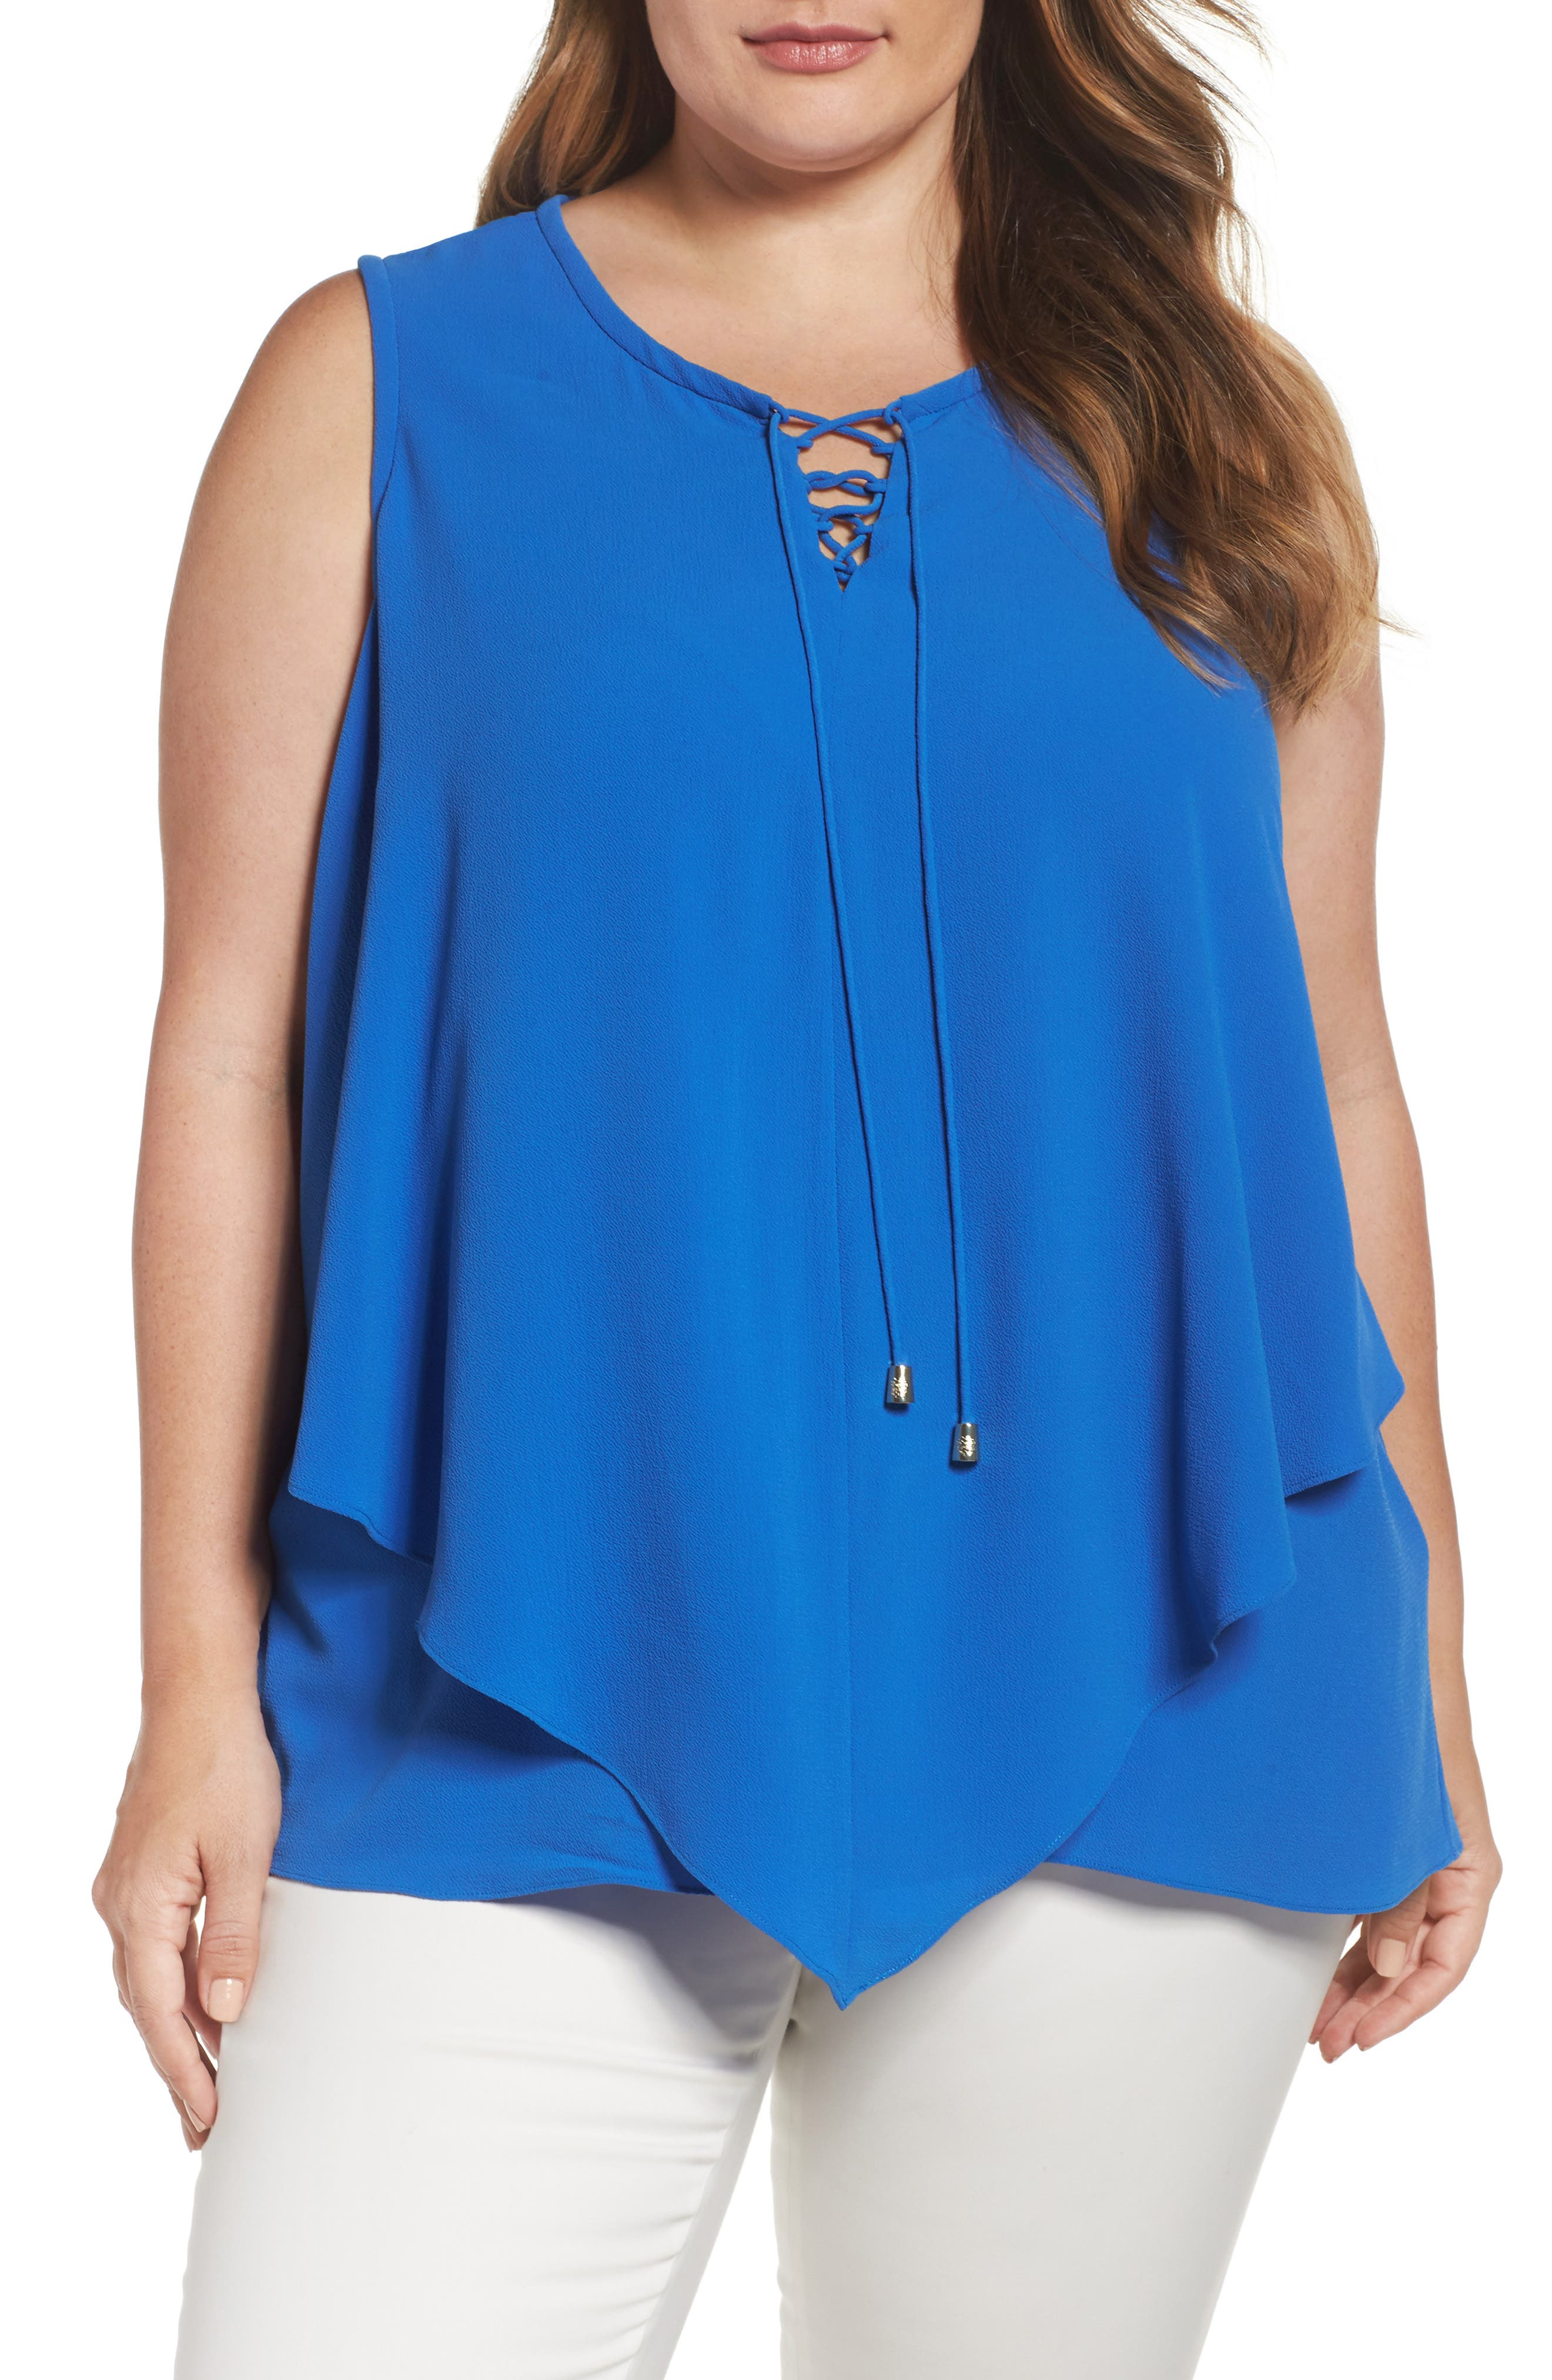 Main Image - Vince Camuto Lace-Up Handkerchief Top (Plus Size)